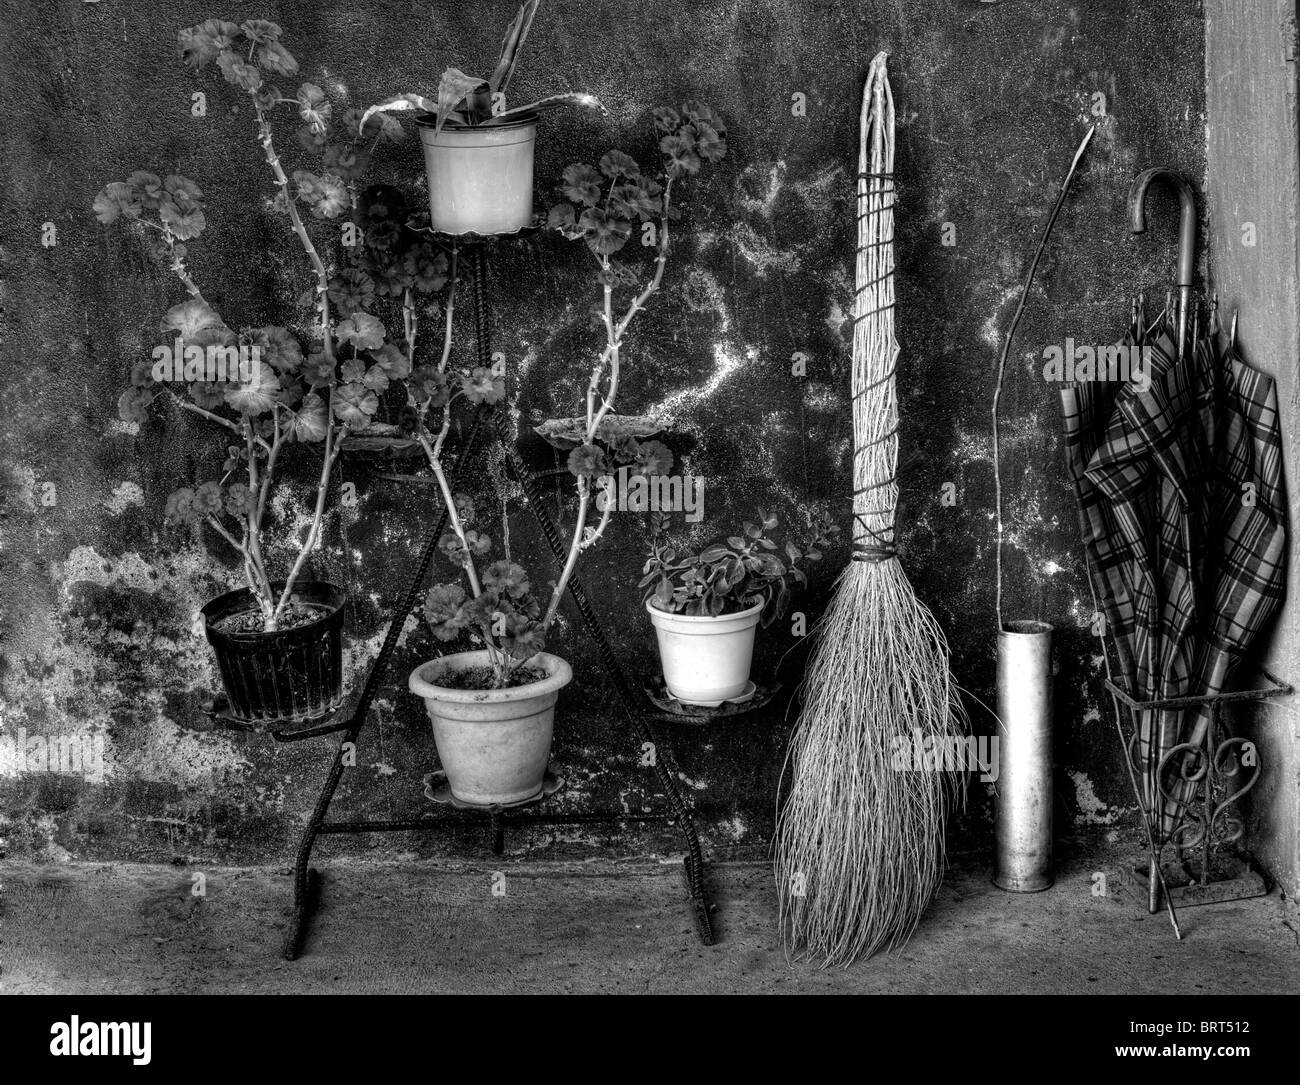 Old but well-known things whose have been long in use in European history.BW image - Stock Image